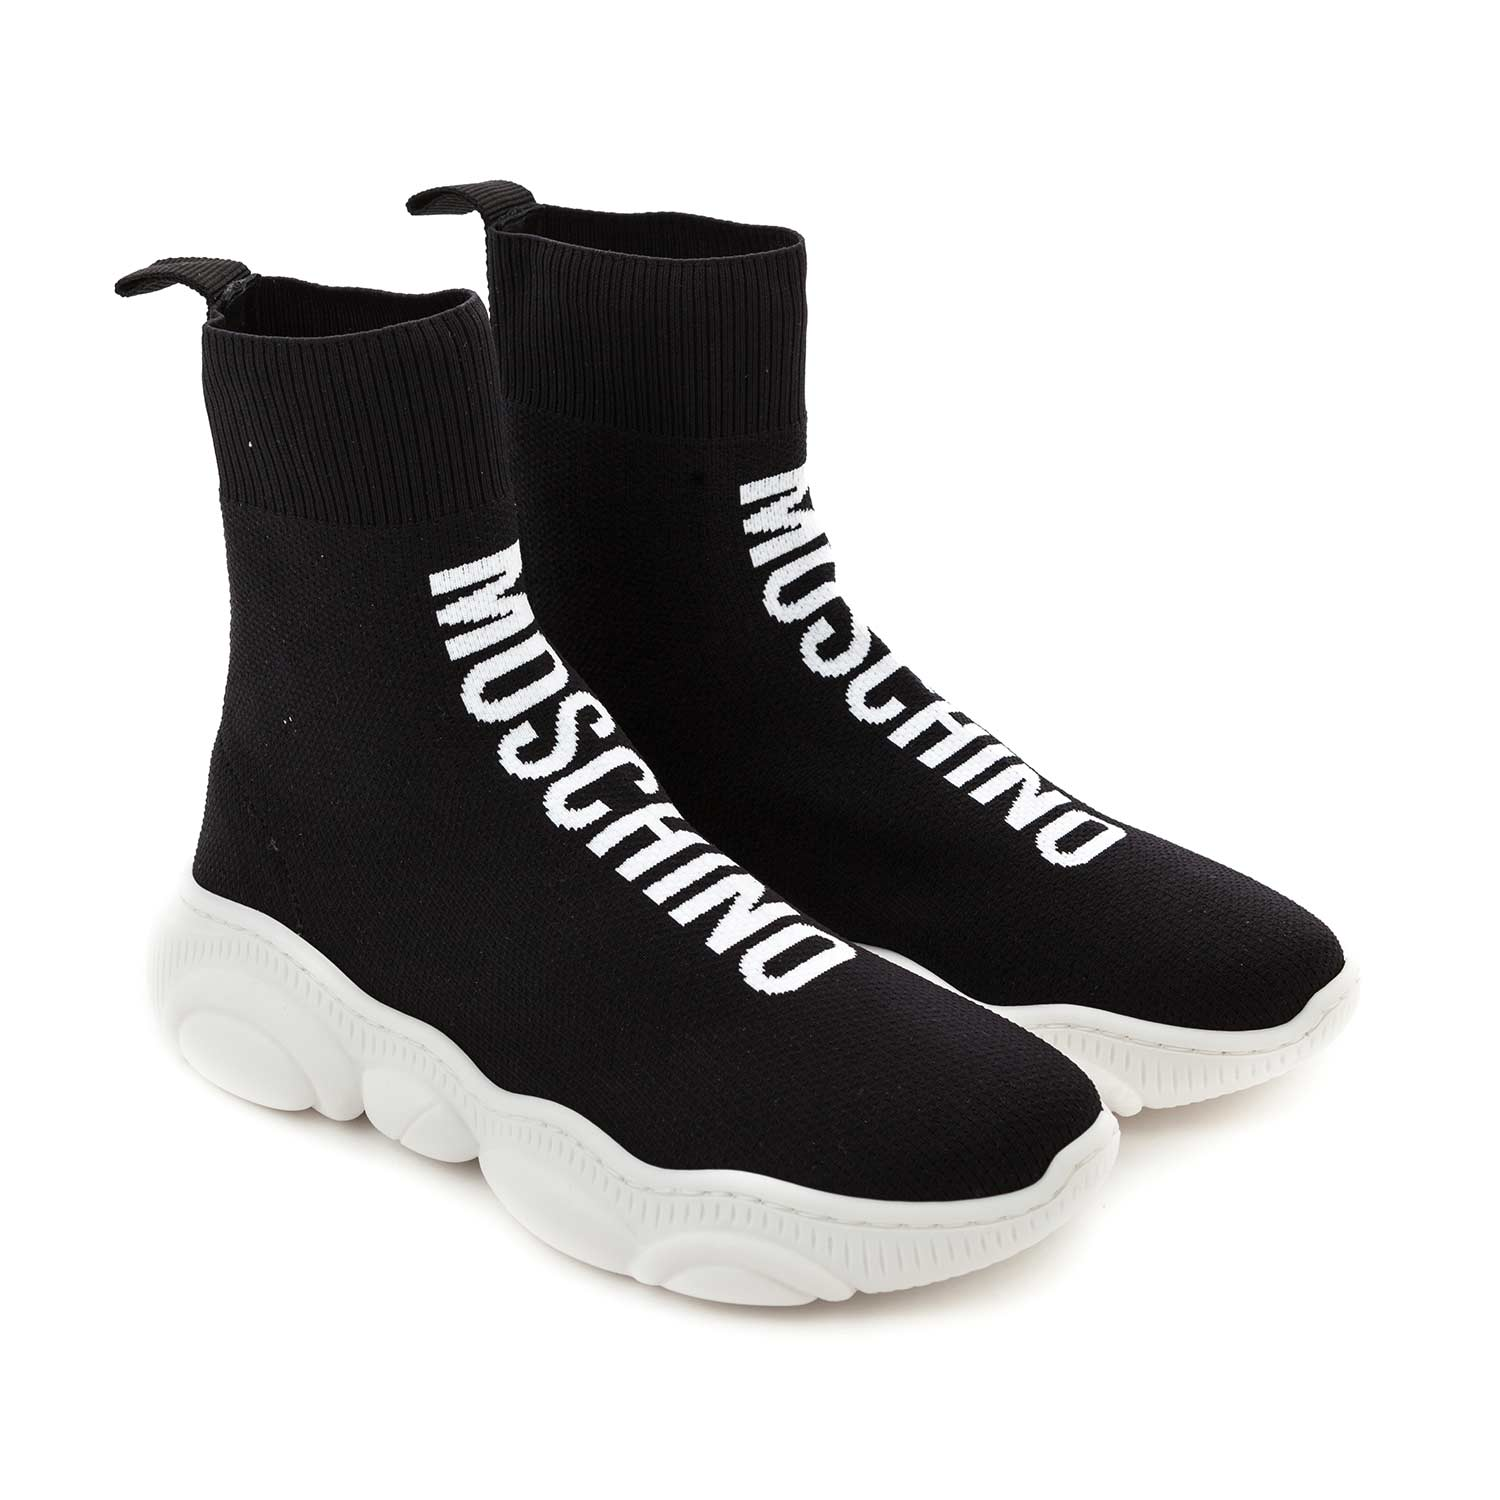 Moschino - Unisex Knit Sock Sneakers